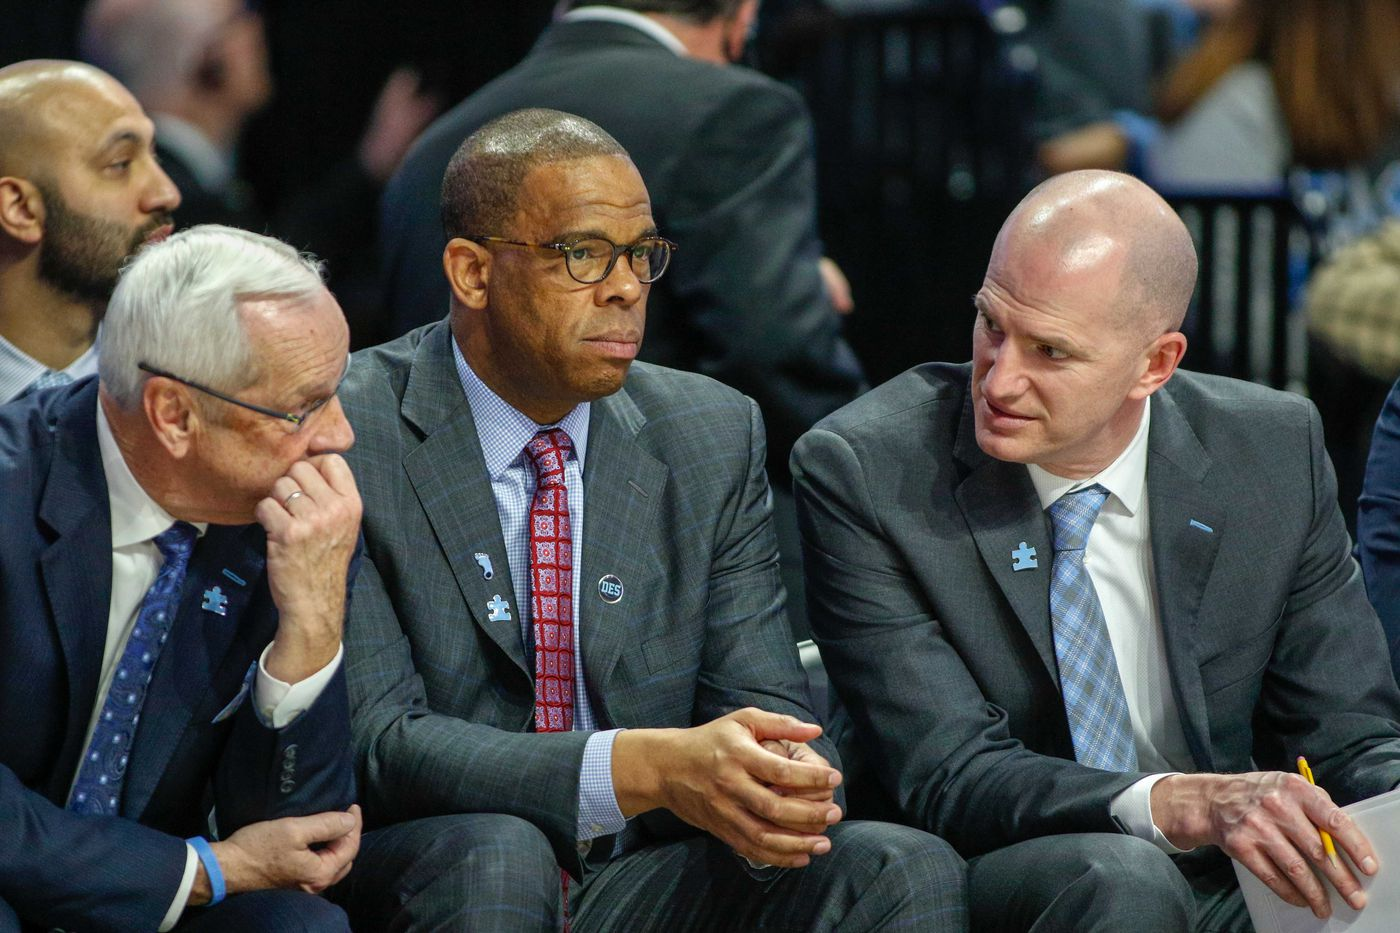 UNC Basketball: Who's in, who's out, and what's next